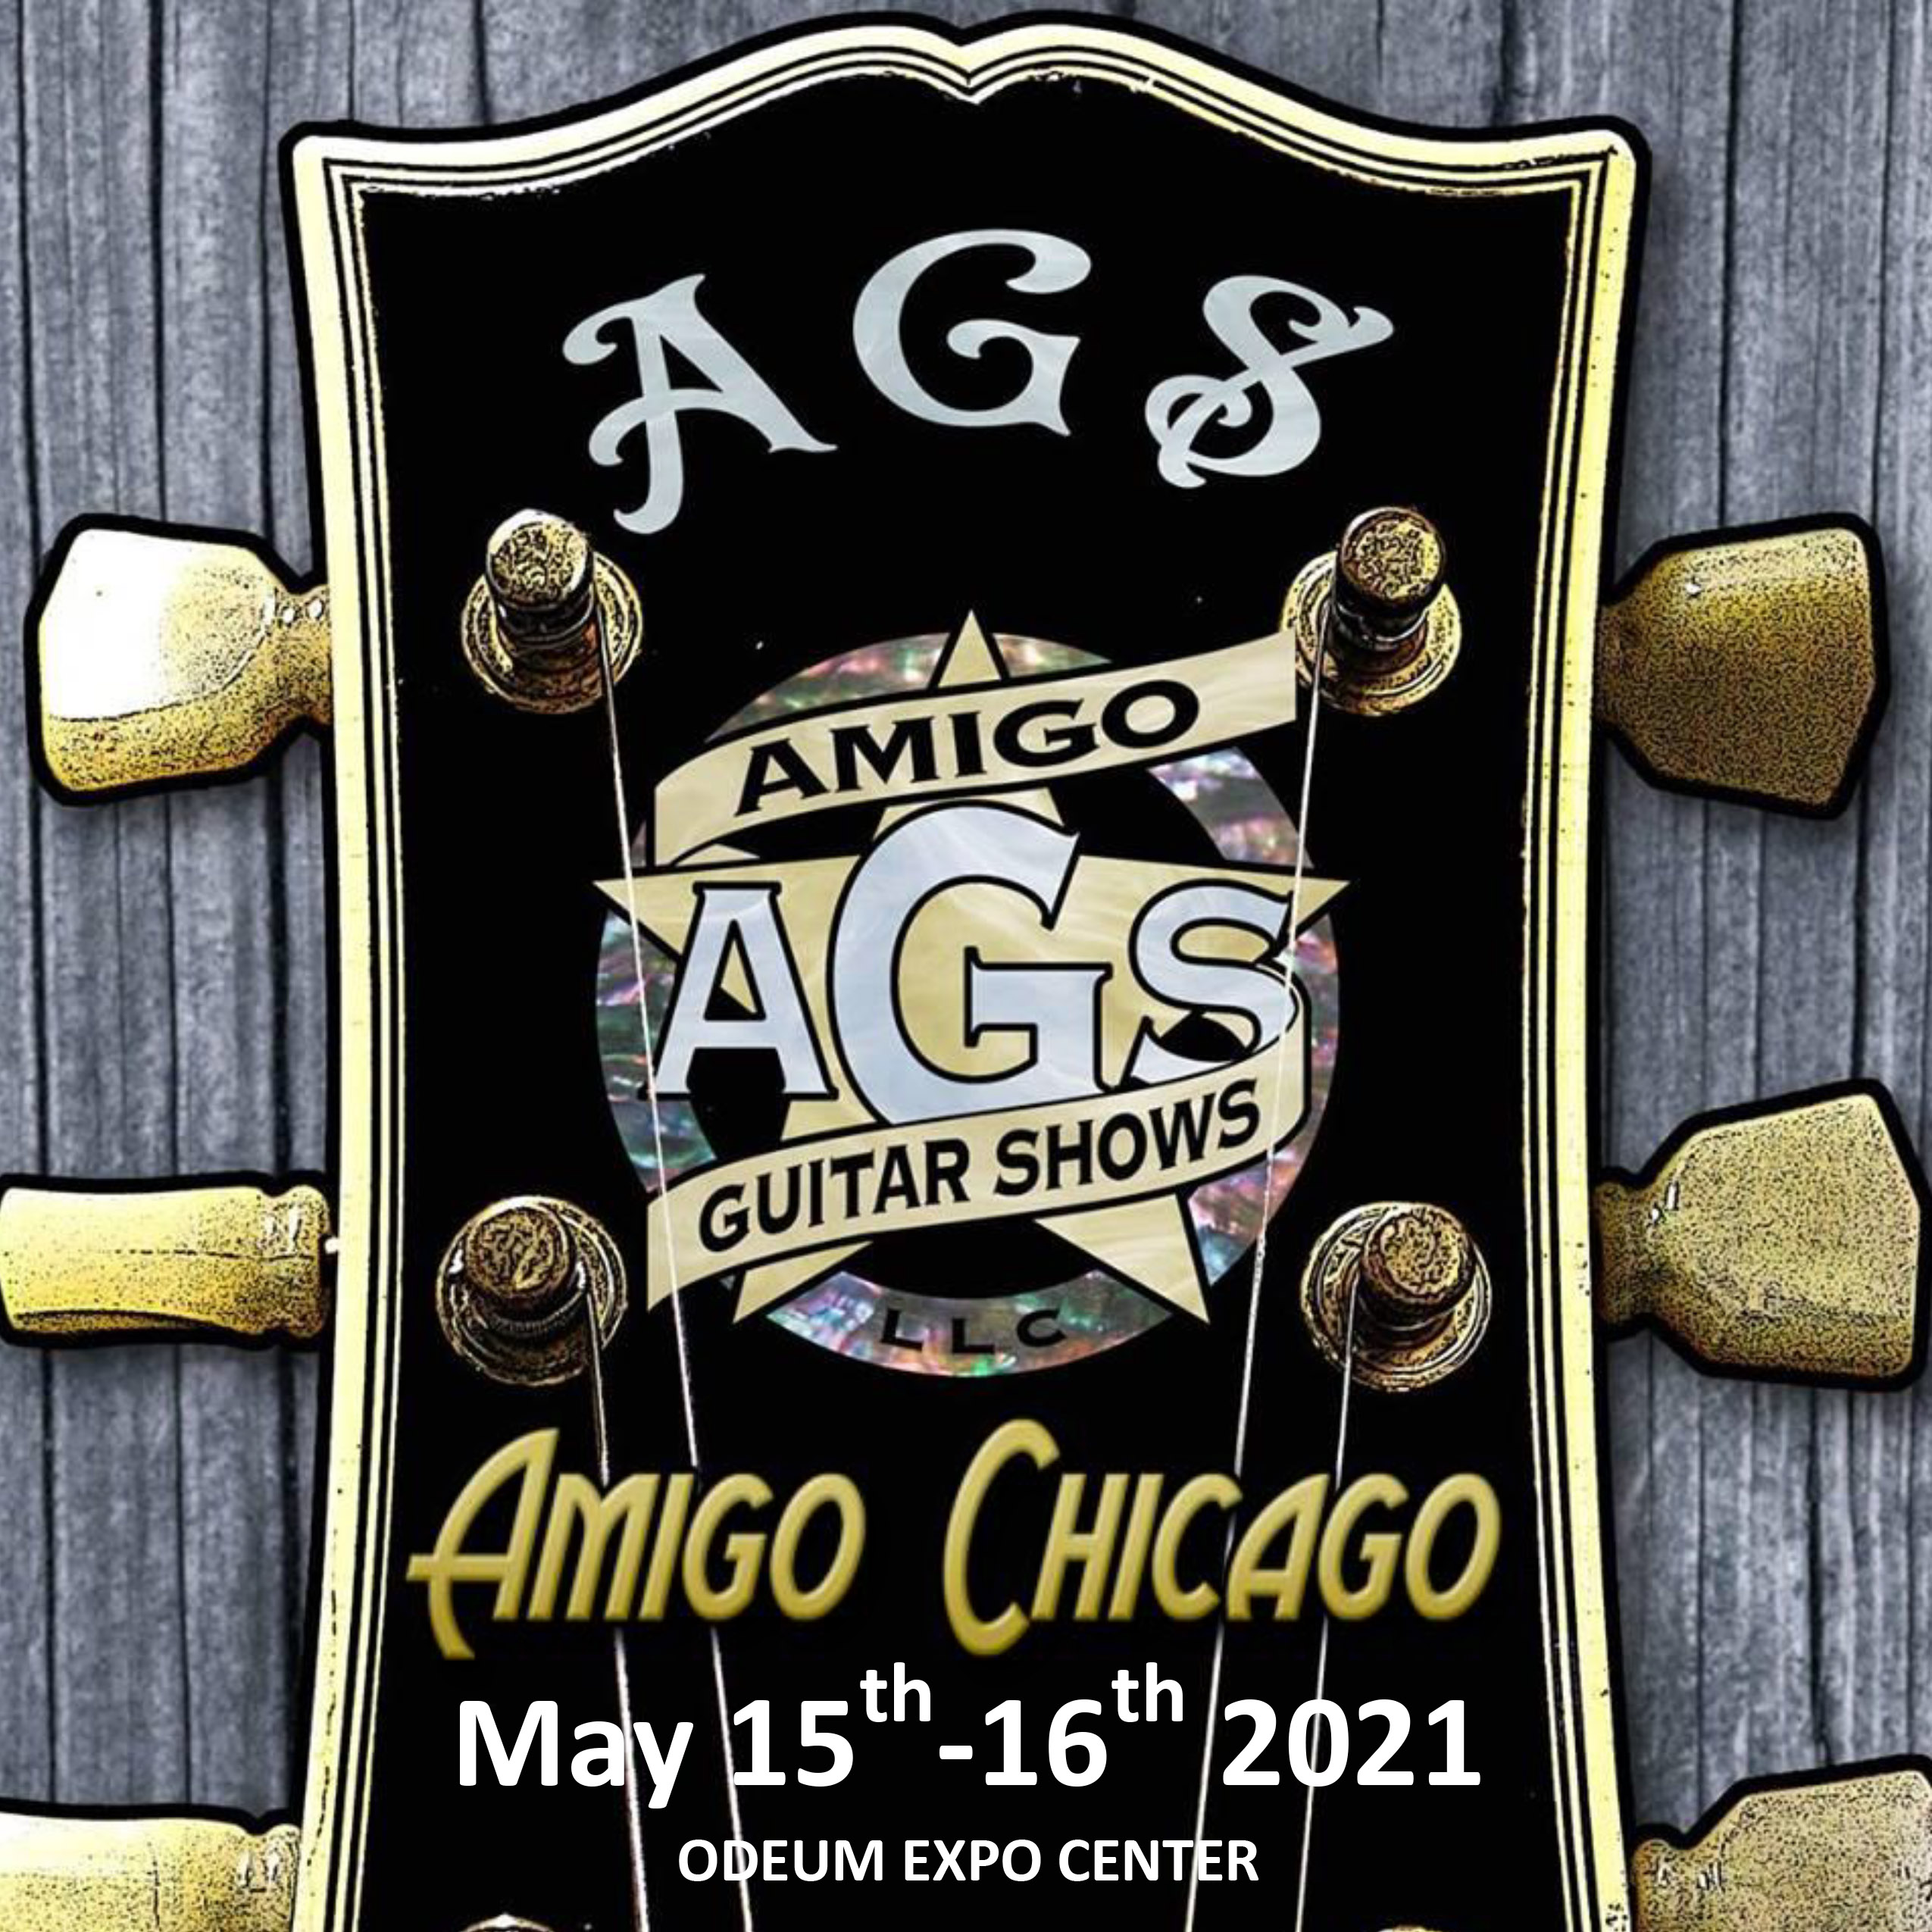 Logo for the Chicago Guitar Show May 15-16, 2021 at the Odeum Expo Center in Villa Park Illinois